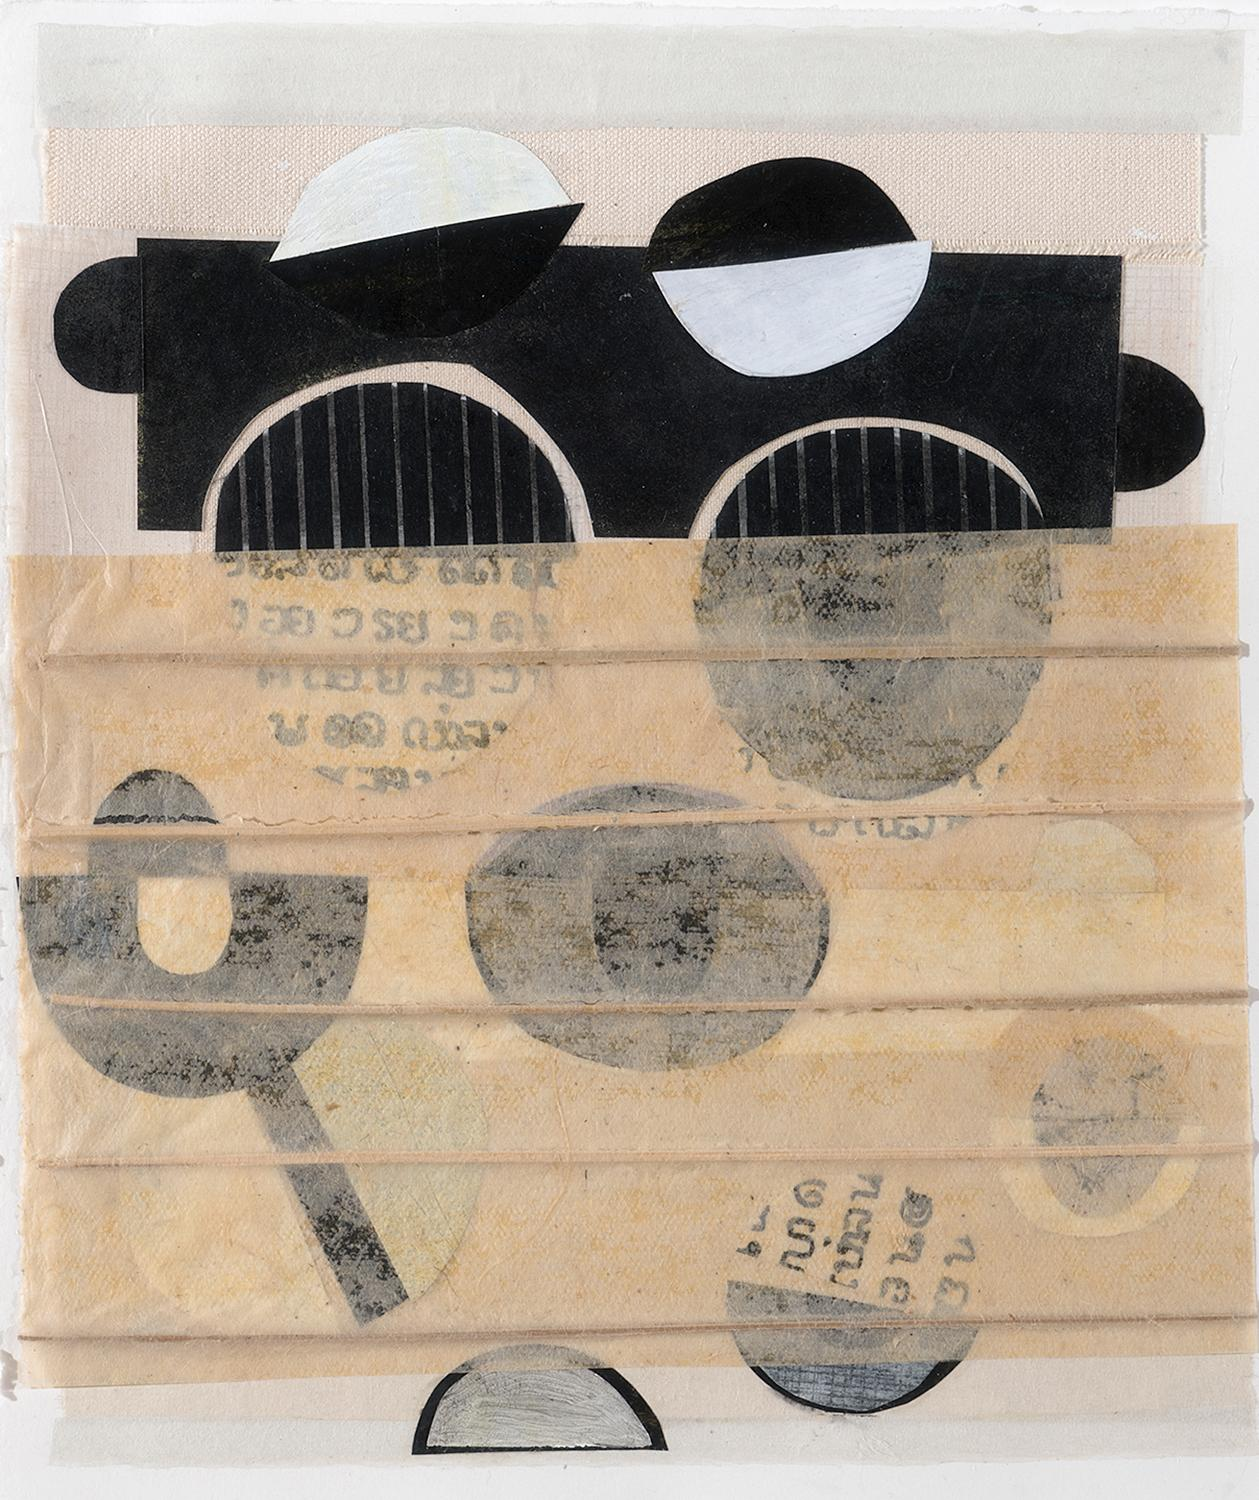 AMOK (Abstract Geometric Mixed Media Collage in Beige, Black & White)